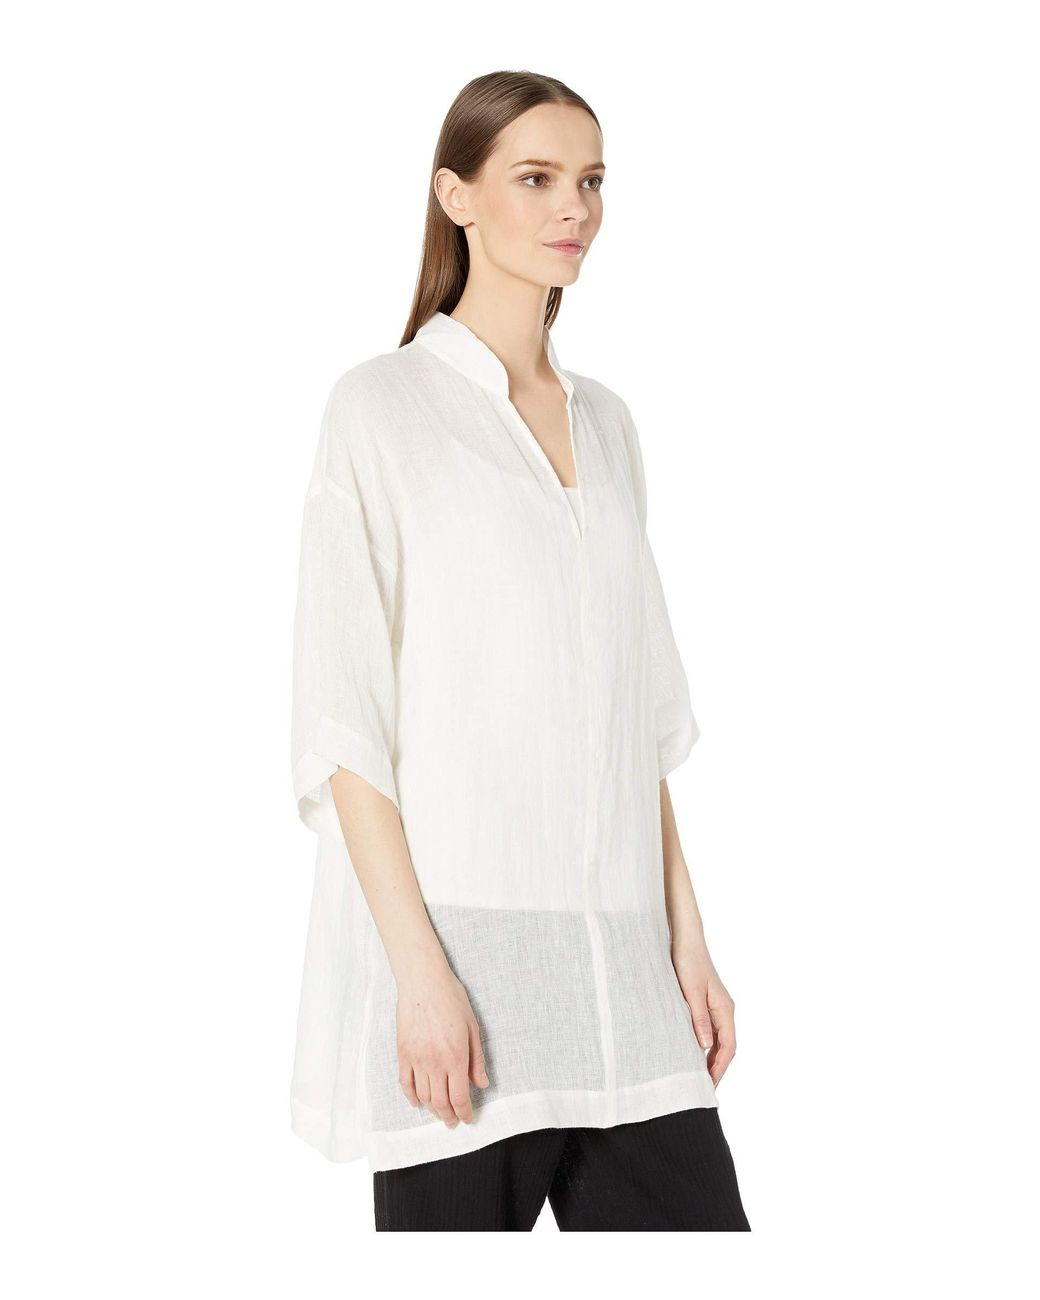 62816b33193 Eileen Fisher Organic Linen Gauze Stand Collar Tunic (white) Women's  Clothing in White - Lyst